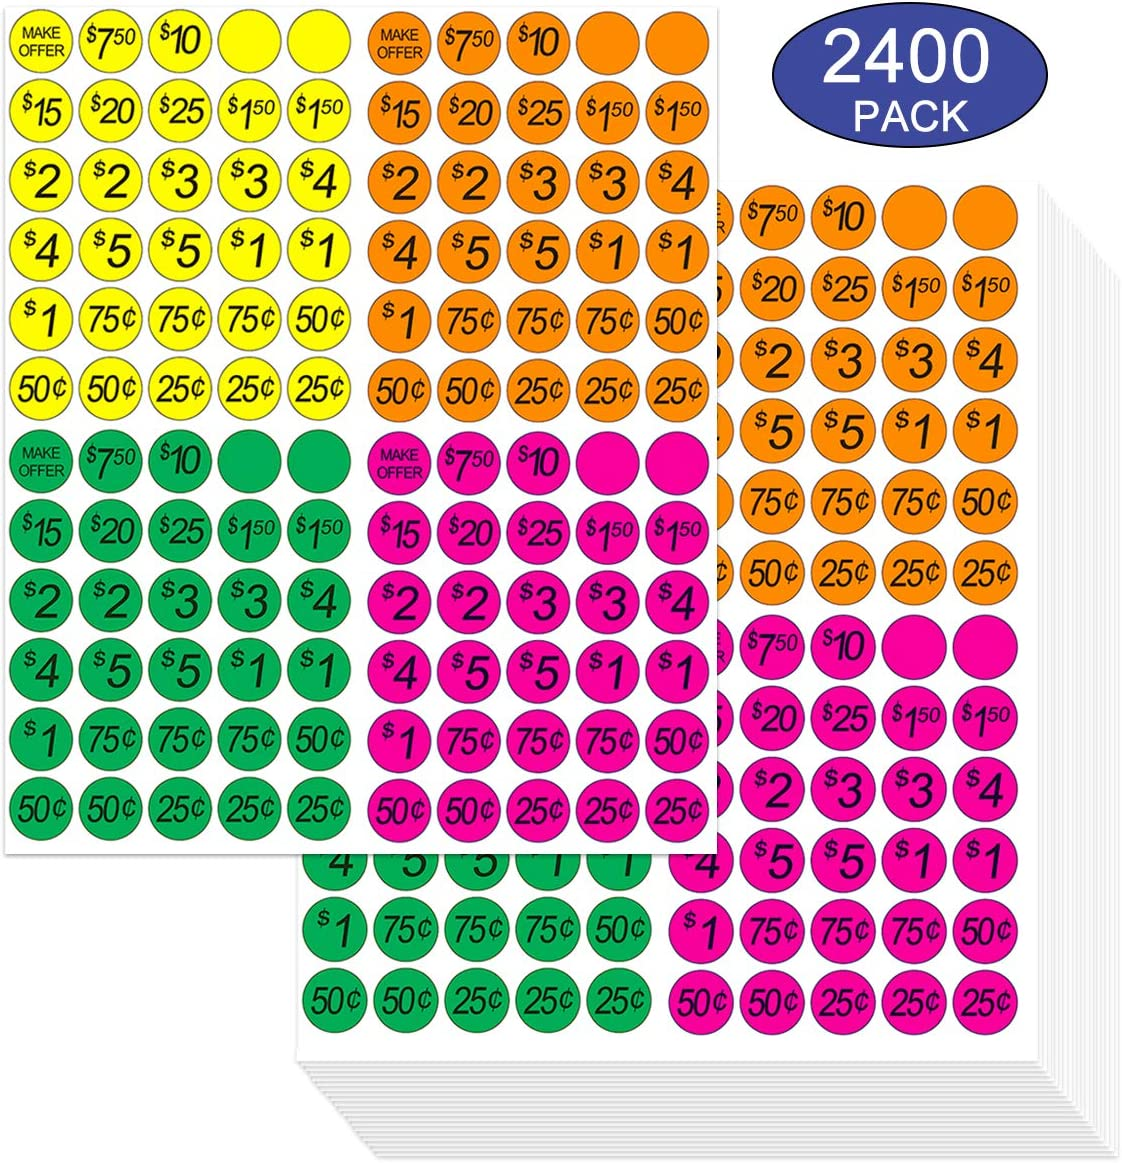 Garage Sale Pricing Stickers, Yoklili Preprinted Price Labels - Bright Neon Removable Sale Stickers with Prices, Multicolored in Yellow/Pink/Green/Orange, Pack of 2400,Sale & Percent off Sign Included 81gM4EmrEDL